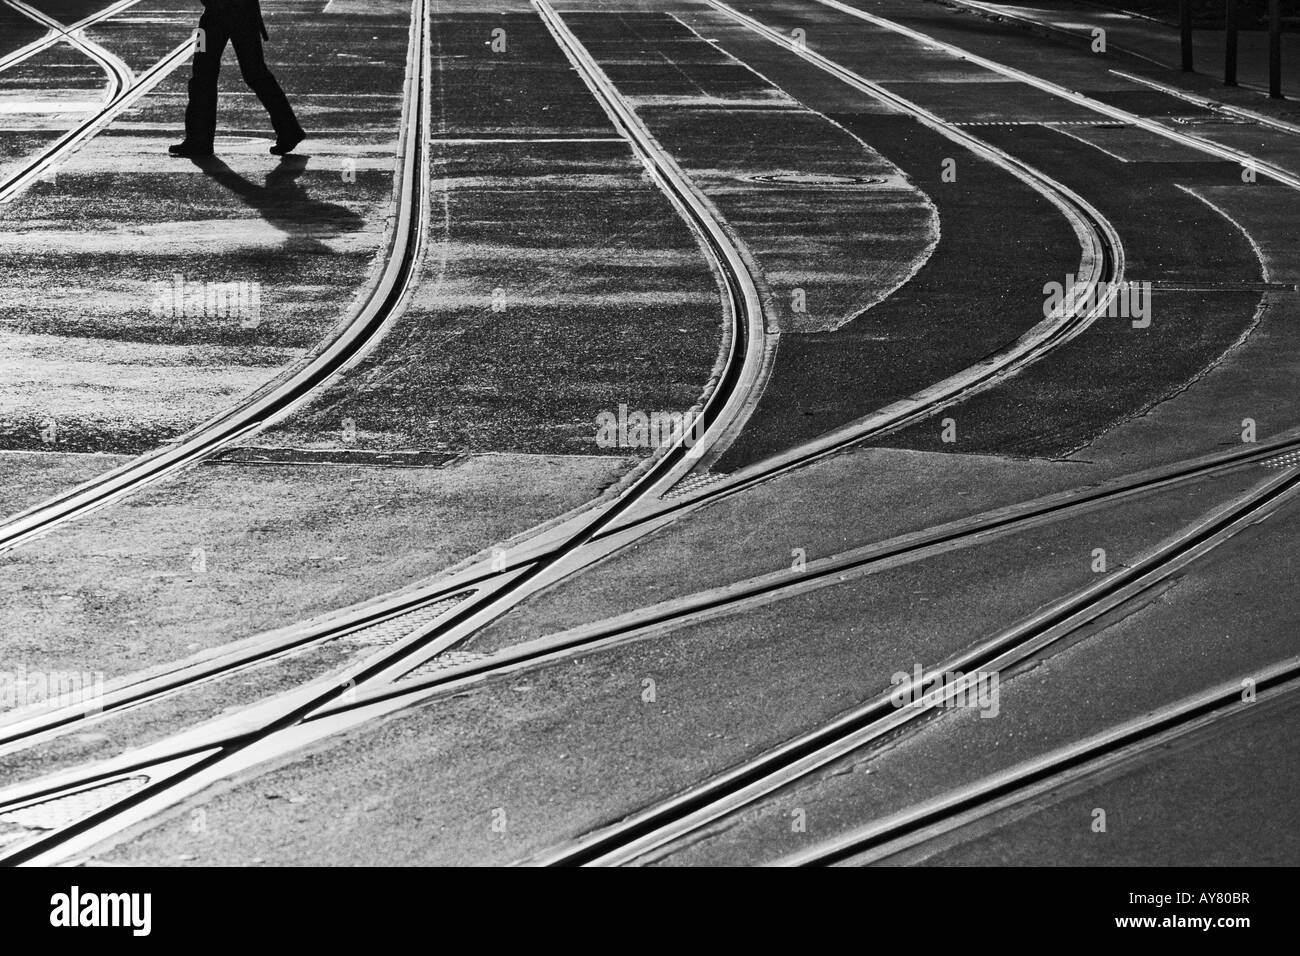 One Person Walking Across Streetcar Tracks - Stock Image